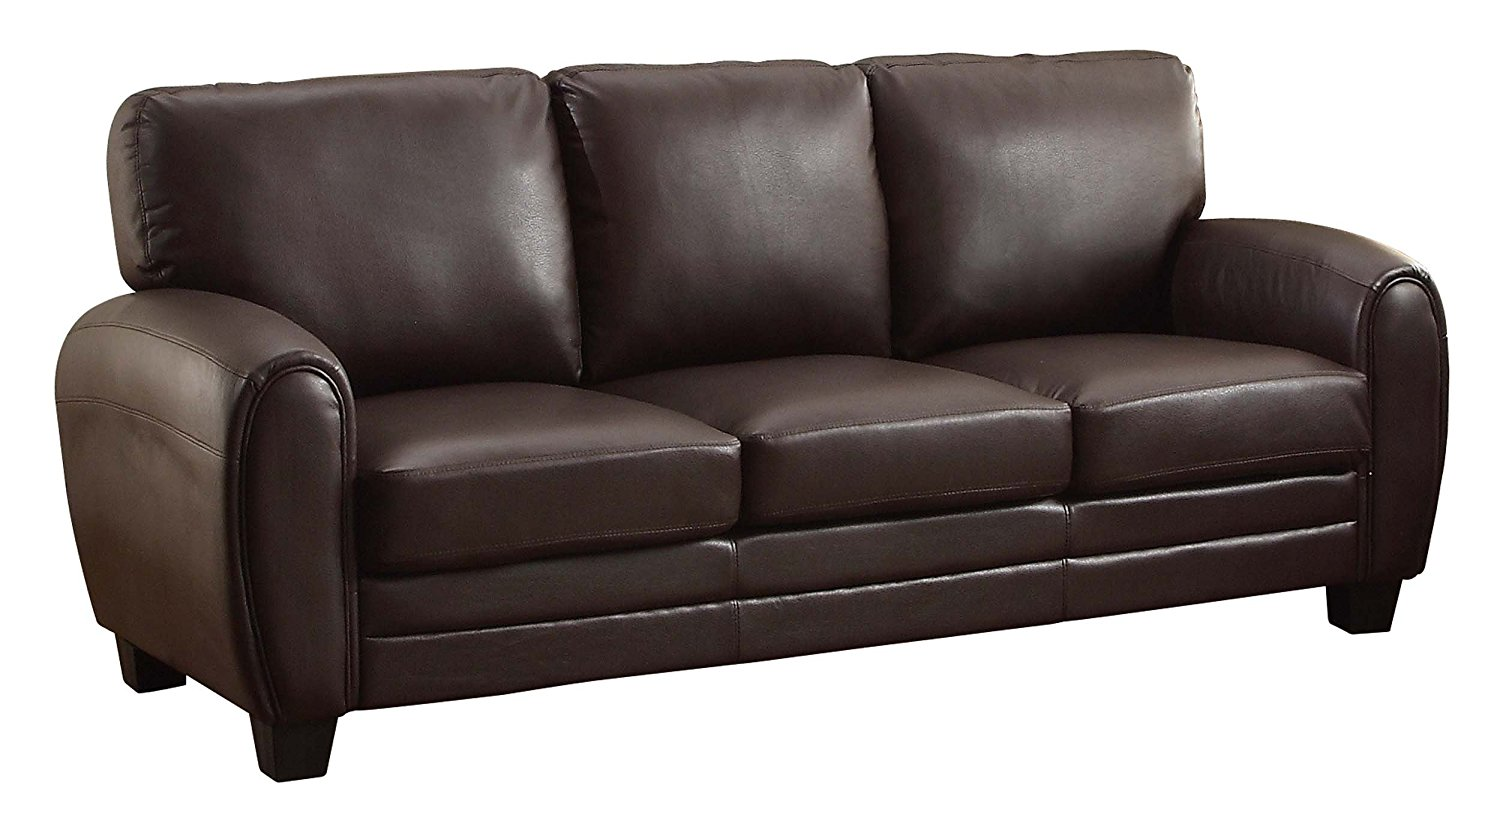 Homelegance 9734DB-3 is a nice leather sofa to buy